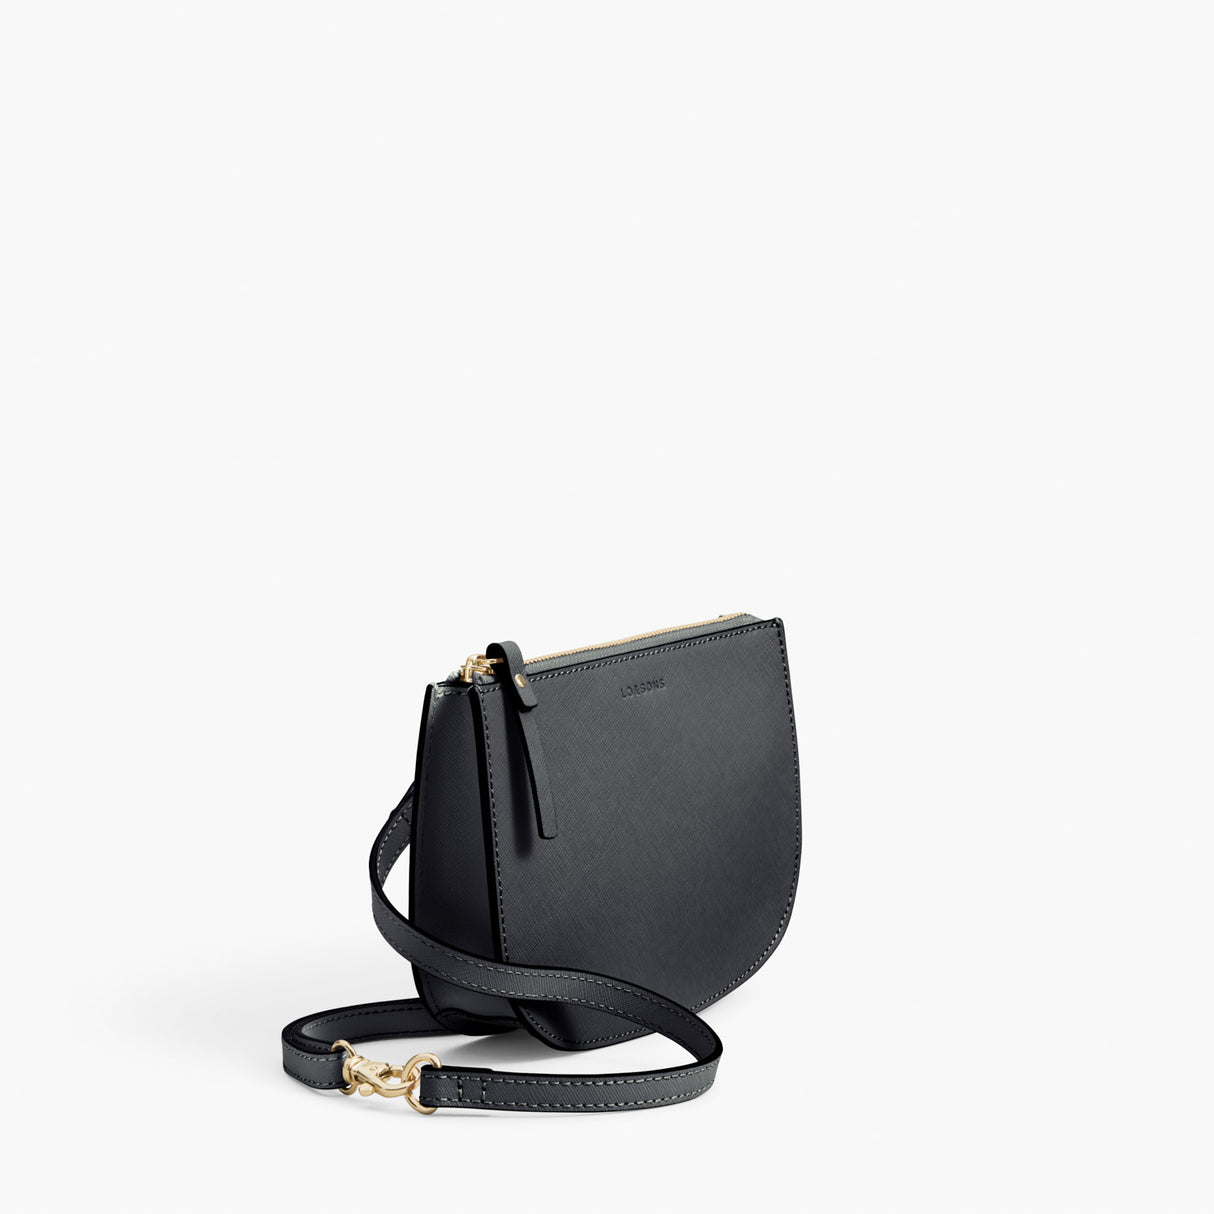 Side - Waverley 2 - Saffiano Leather - Dark Grey / Gold / Grey - Crossbody Bag - Lo & Sons